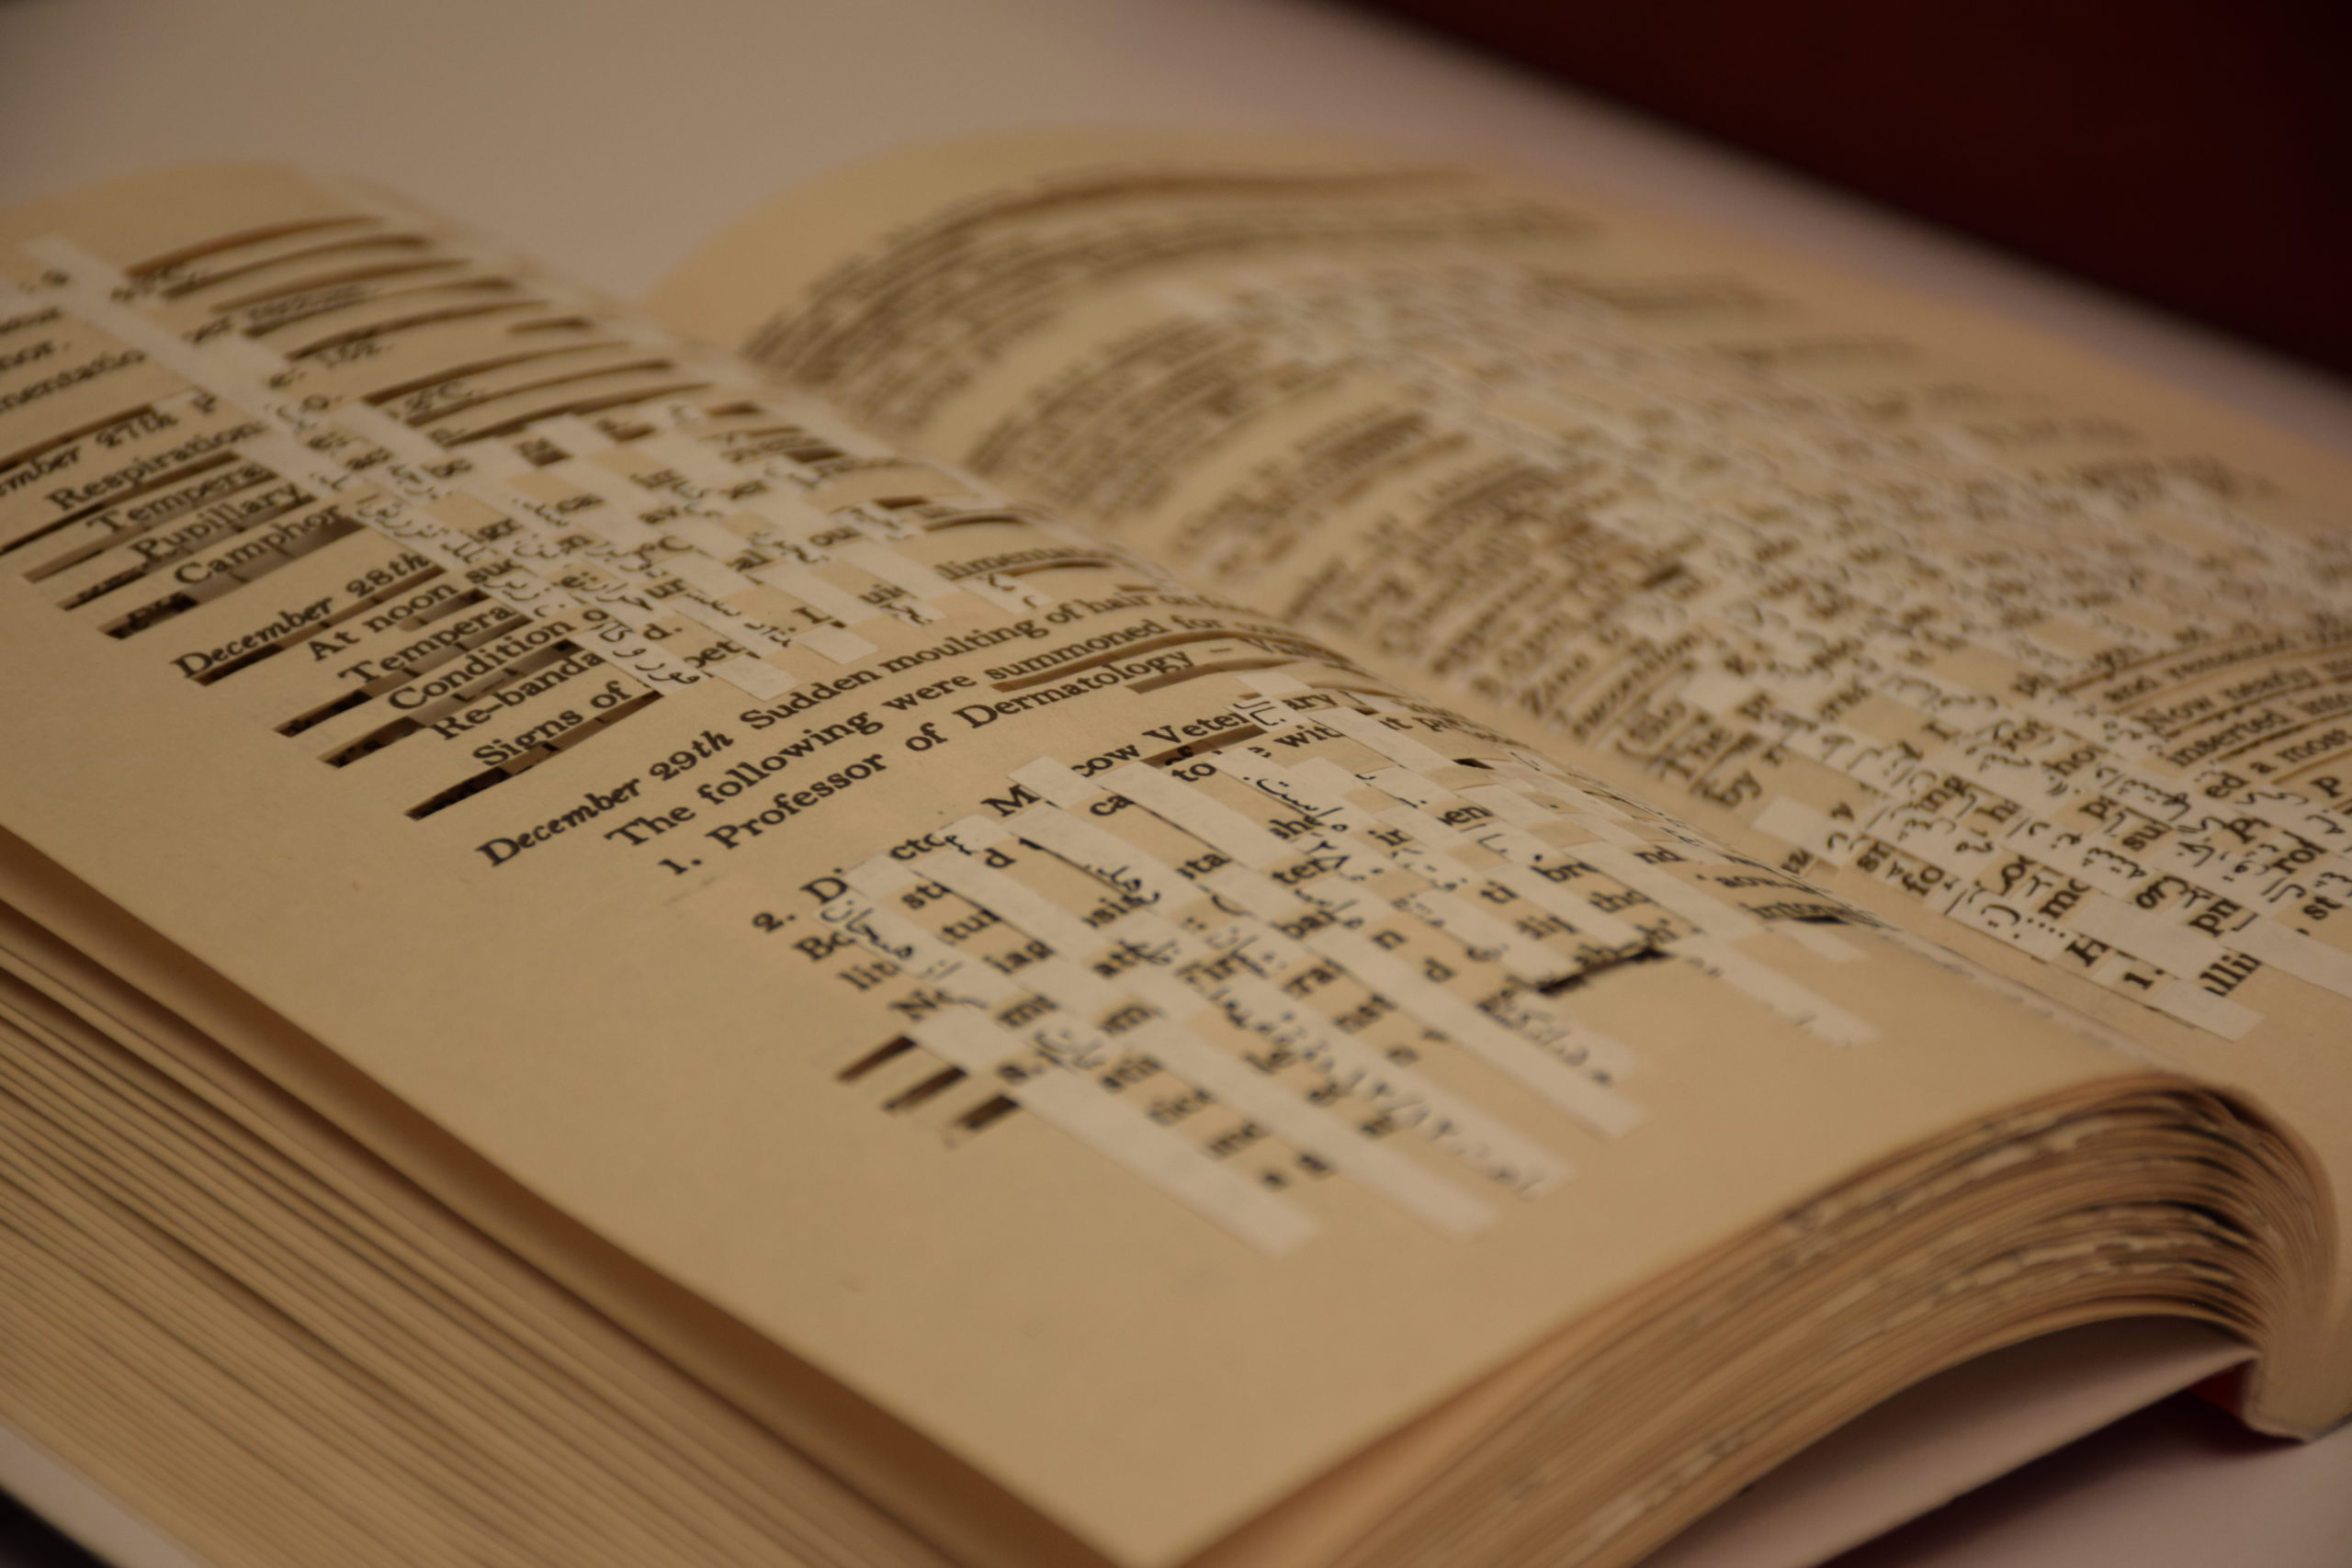 A close up photo of a book with strips of contrasting paper woven through its text